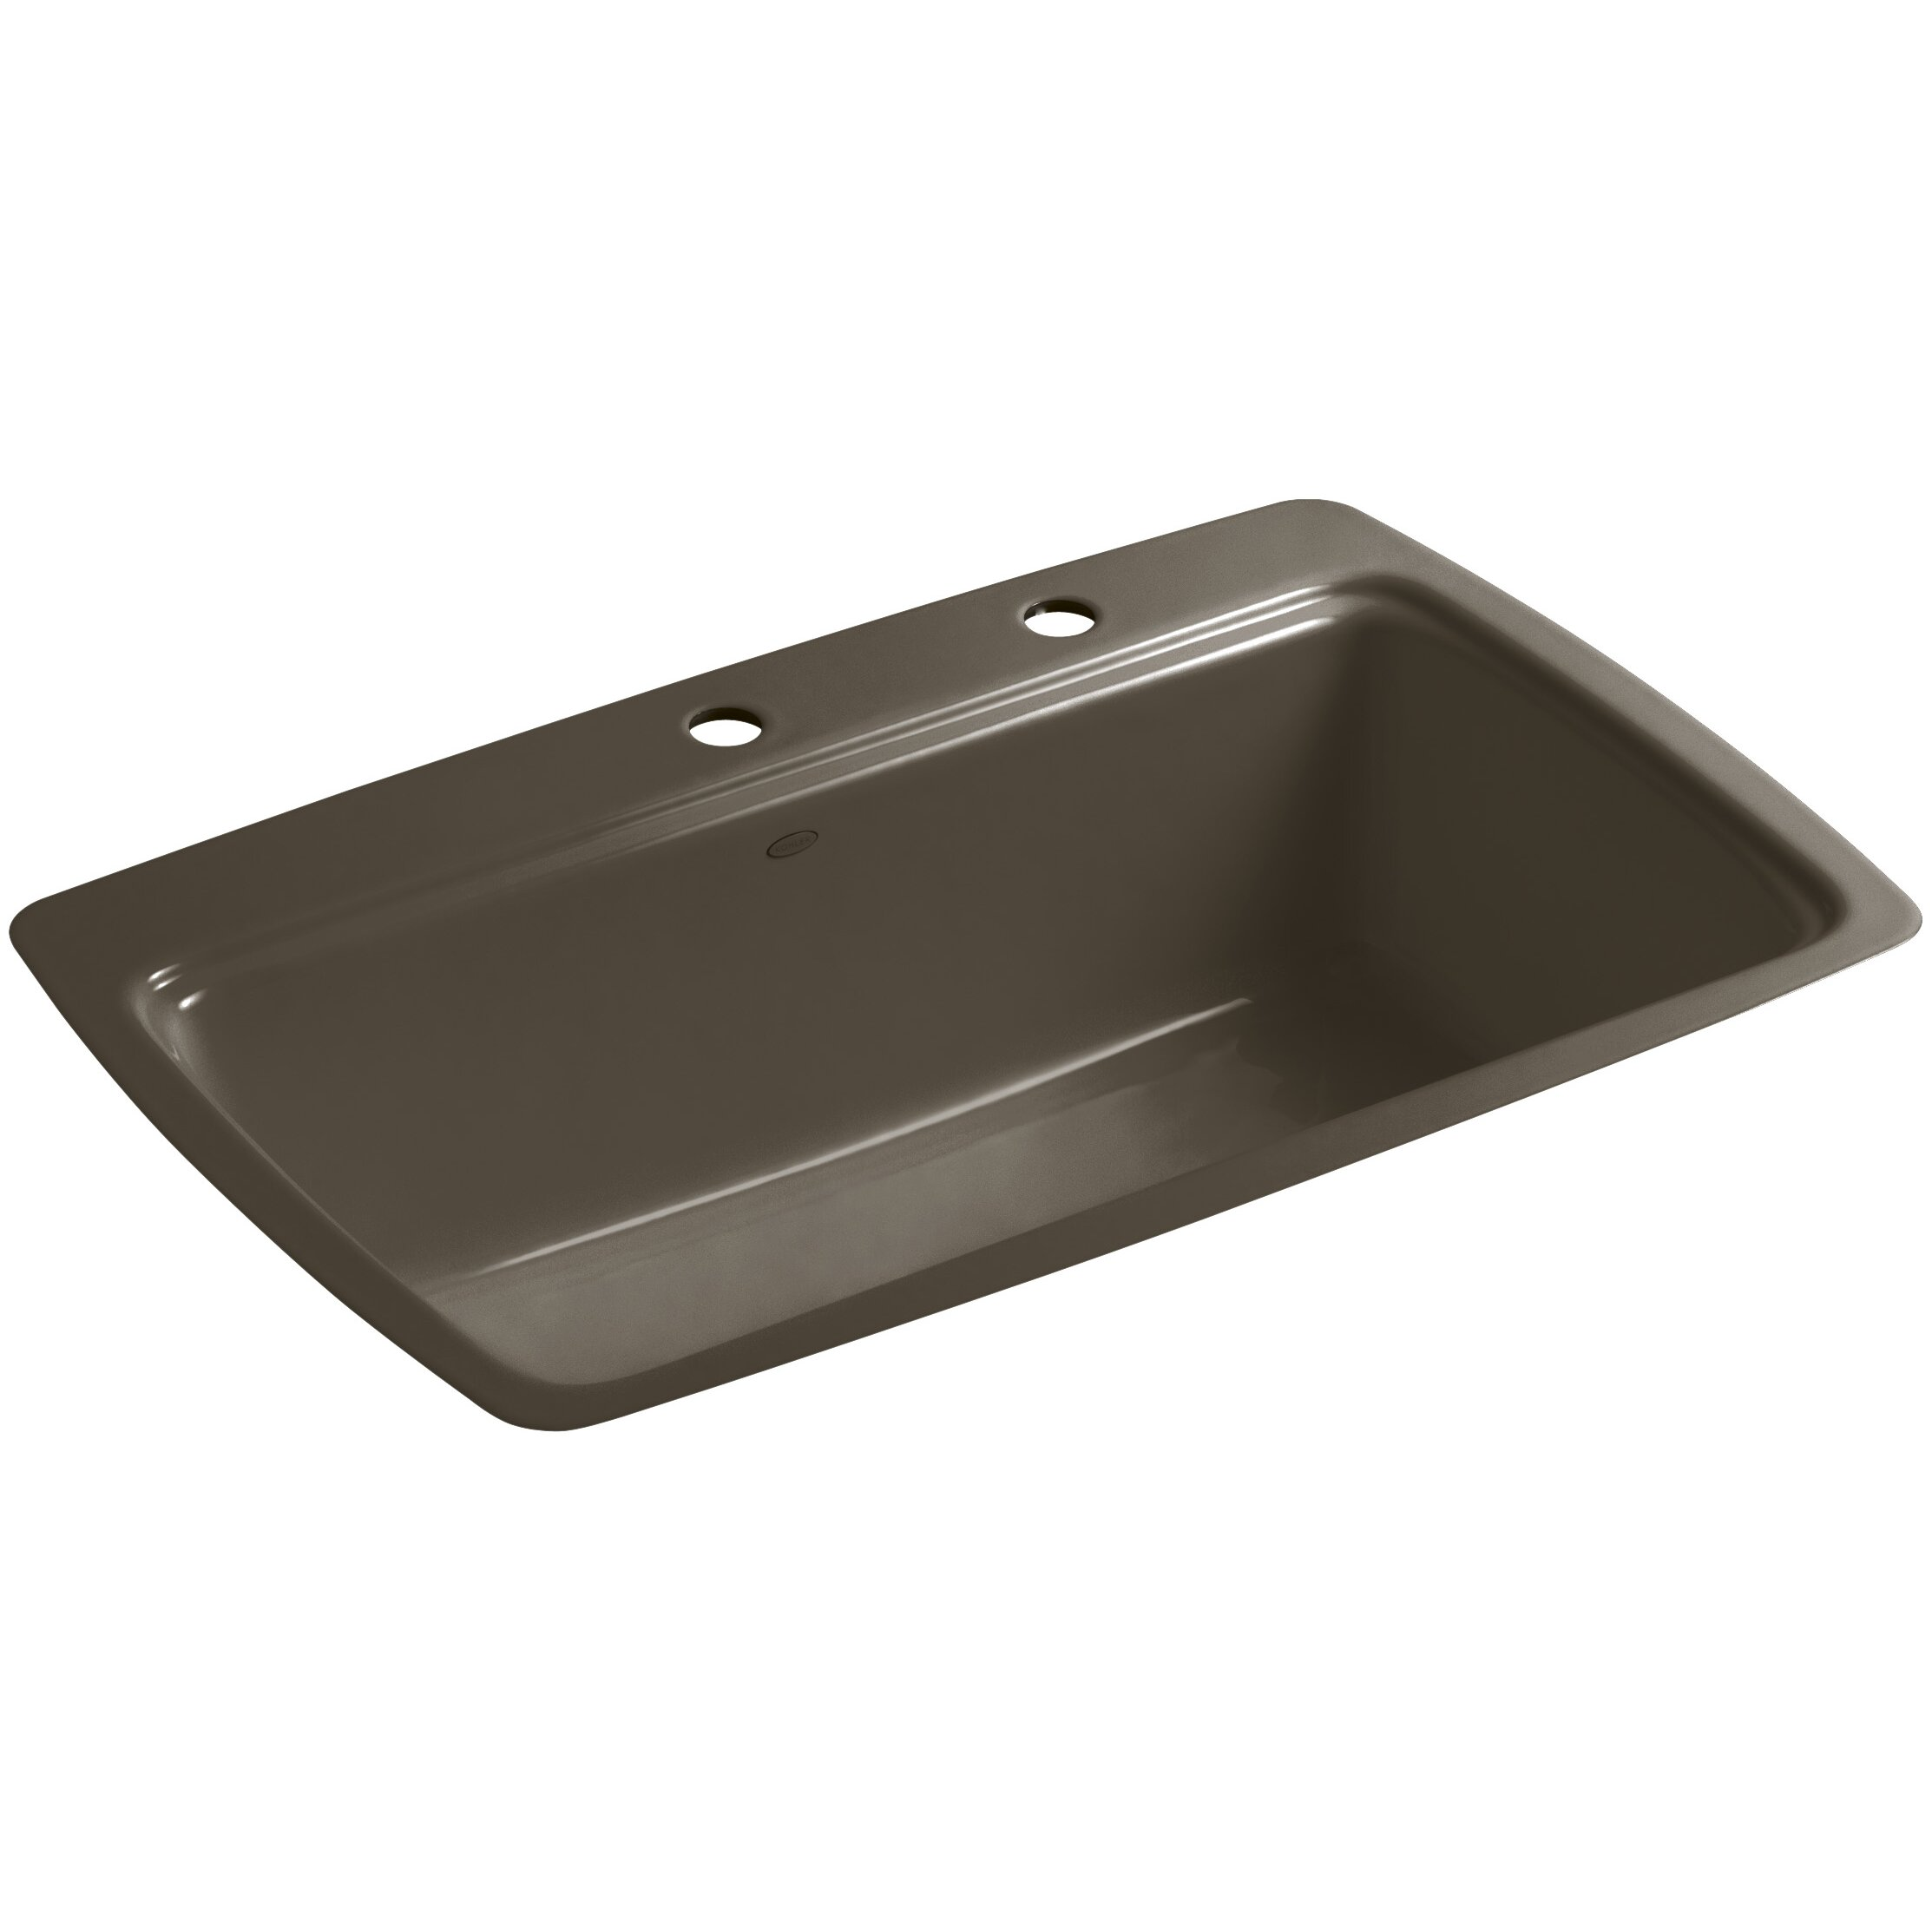 Kohler Single Basin Kitchen Sink : Kohler Cape Dory Tile-In Single-Bowl Kitchen Sink with 2 Faucet Holes ...